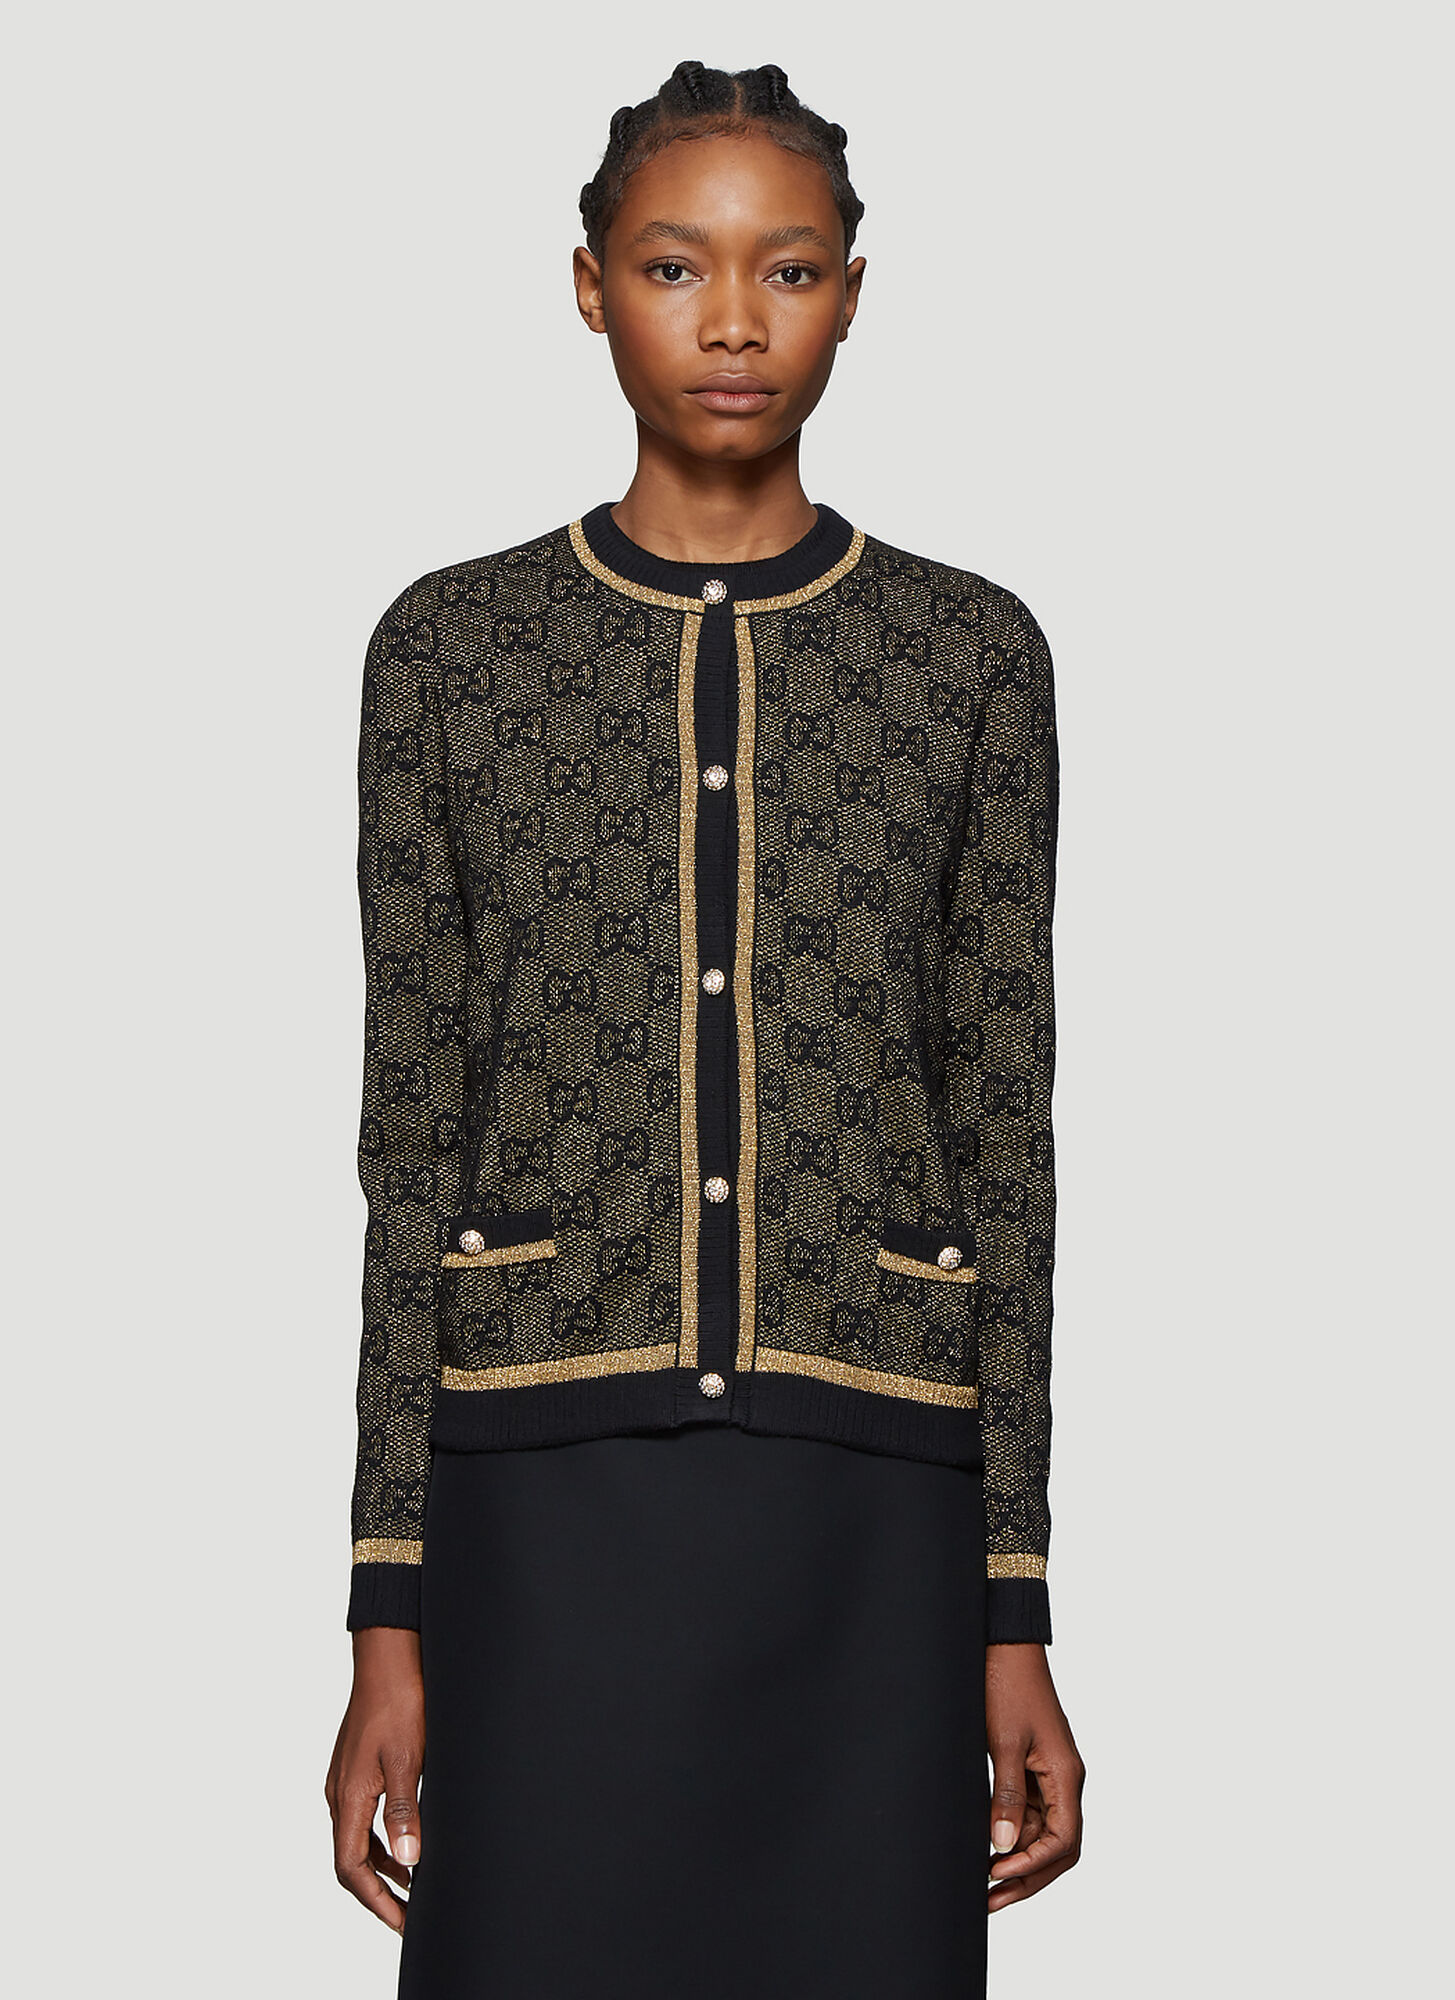 Gucci GG Logo Metallic-Knit Cardigan in Brown